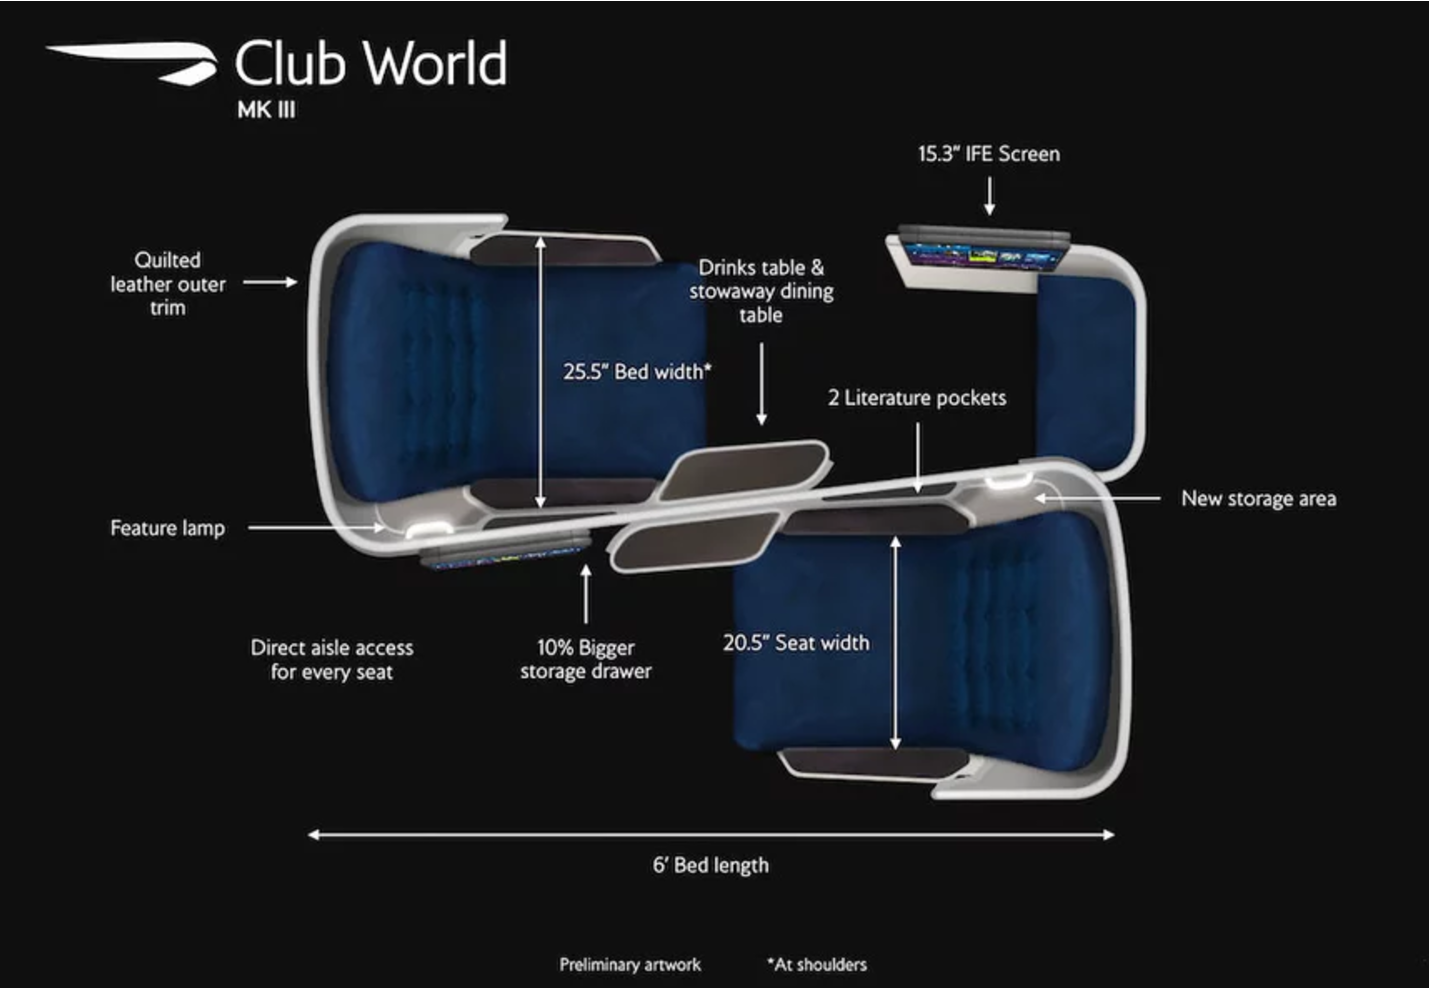 Potential New BA Club World Seat